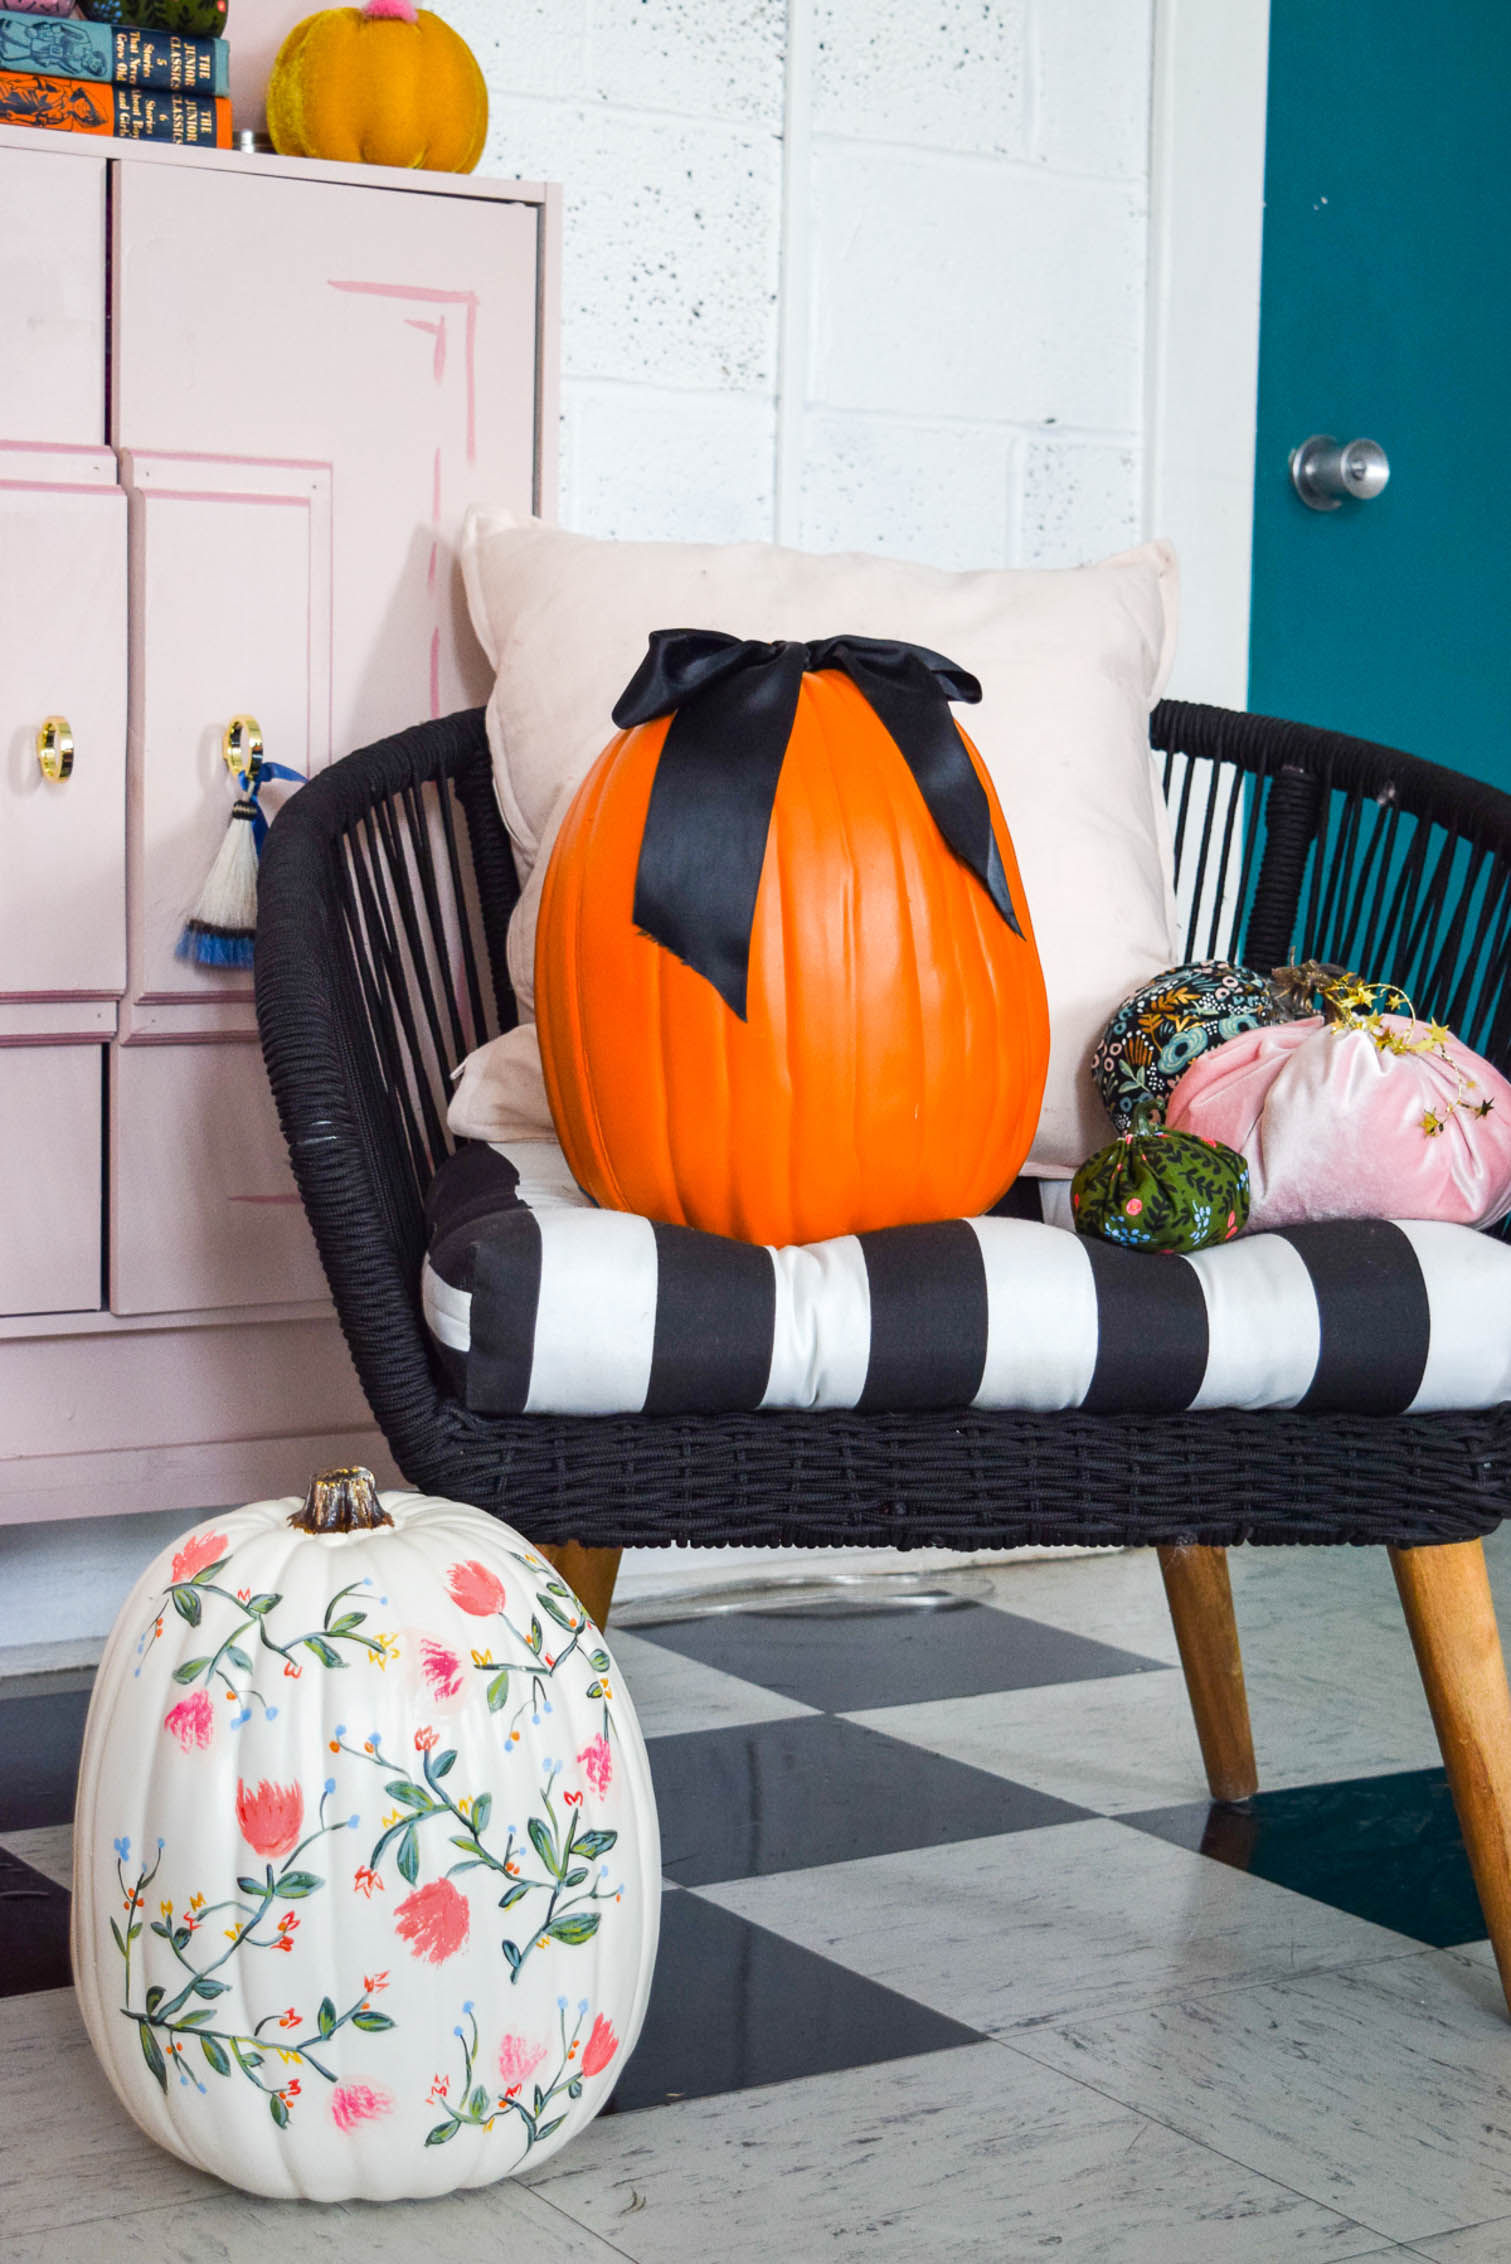 pumpkins on a chair by the door